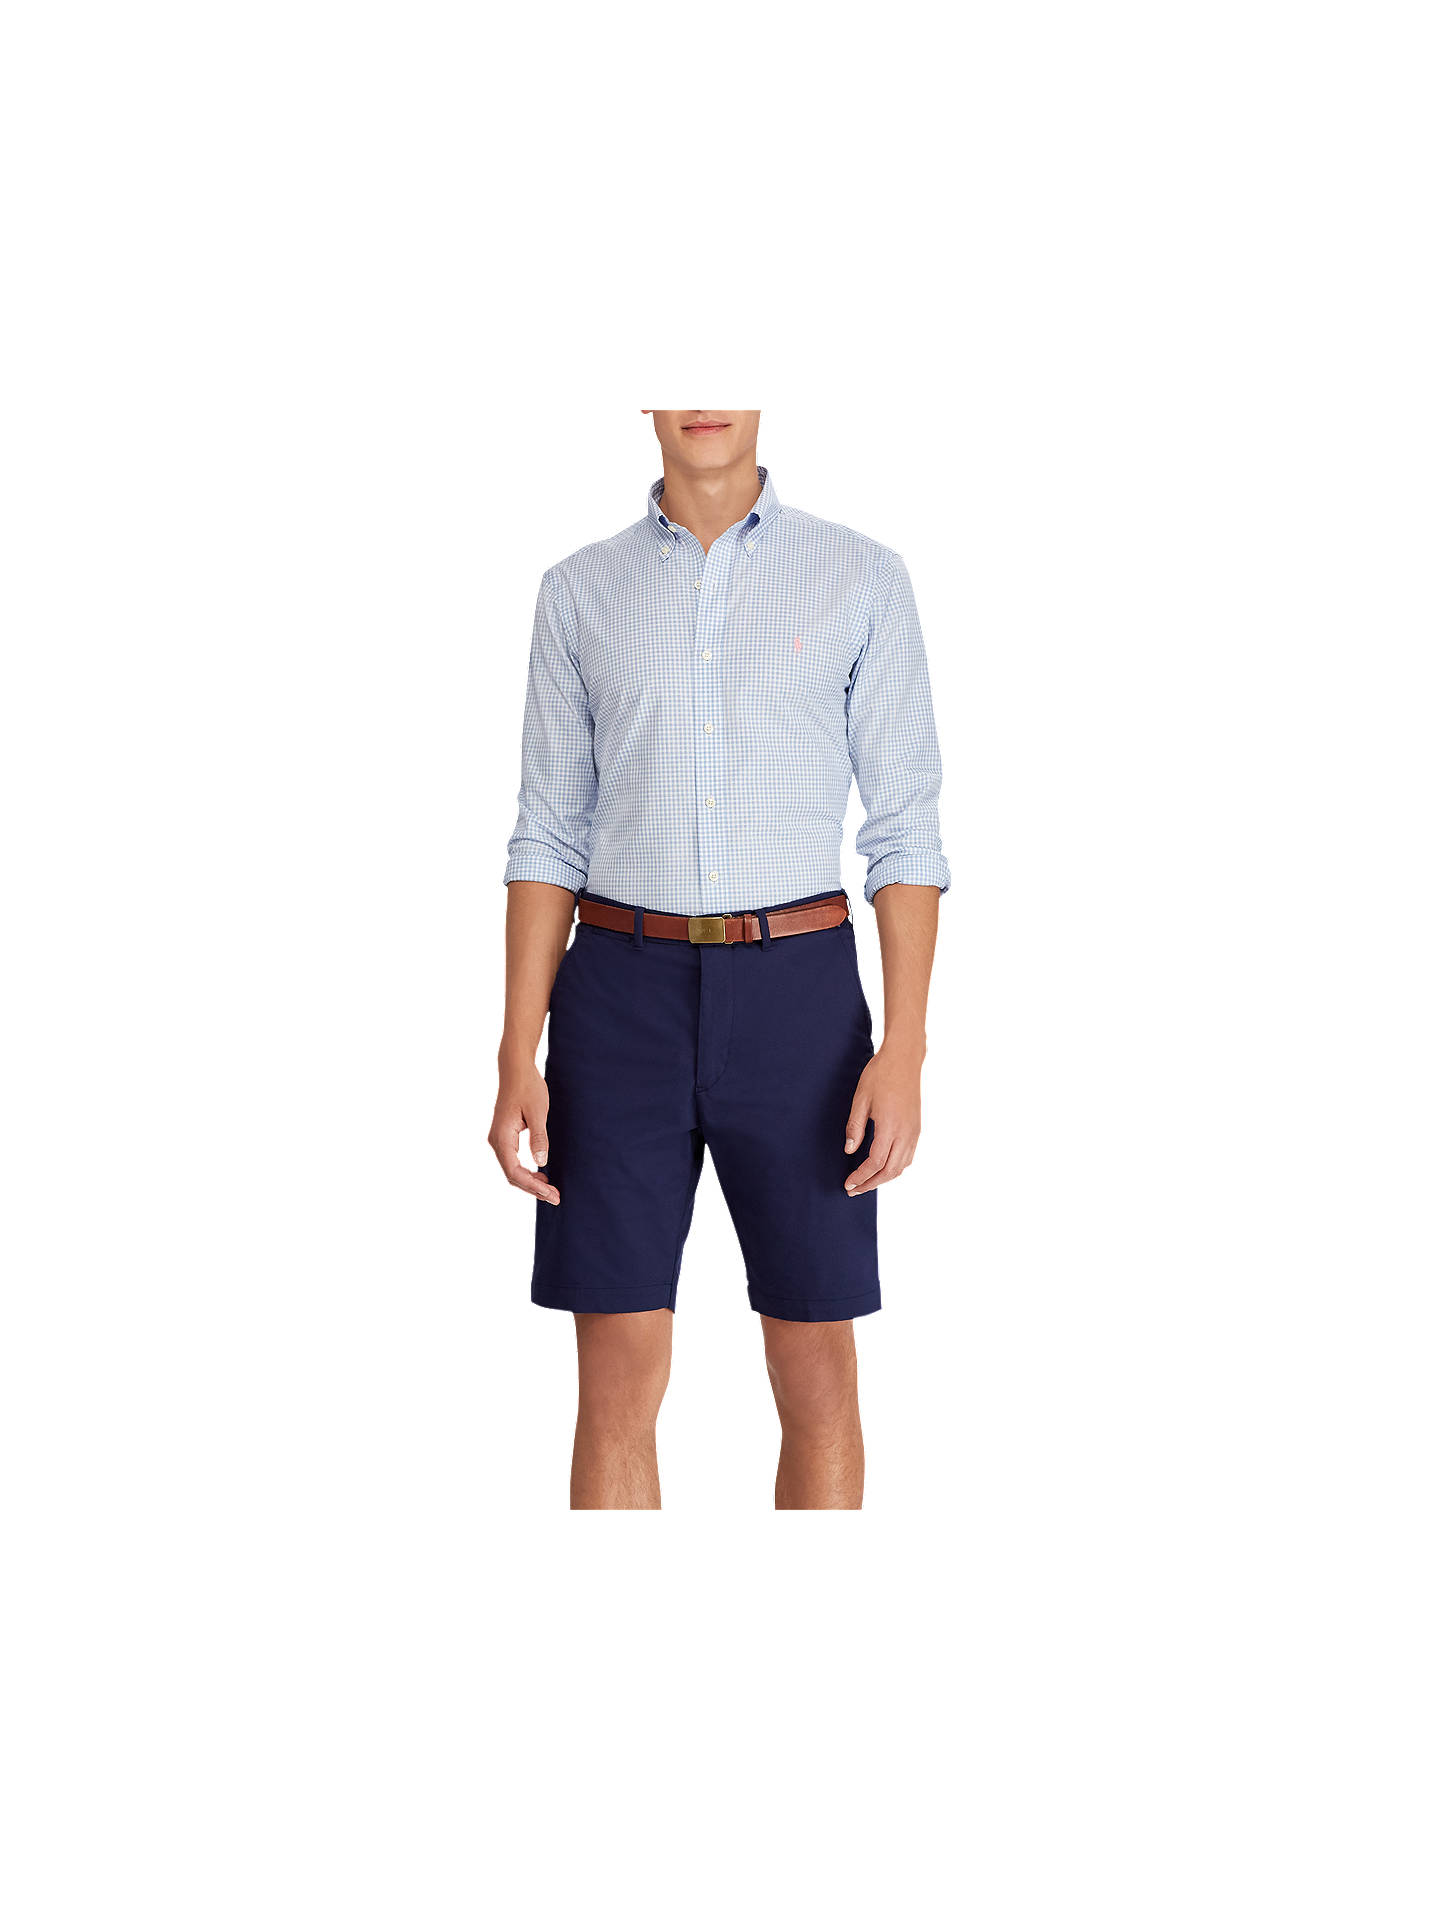 Buy Polo Golf by Ralph Lauren Heather Gingham Dobby Shirt, Cobalt Blue/White, XL Online at johnlewis.com